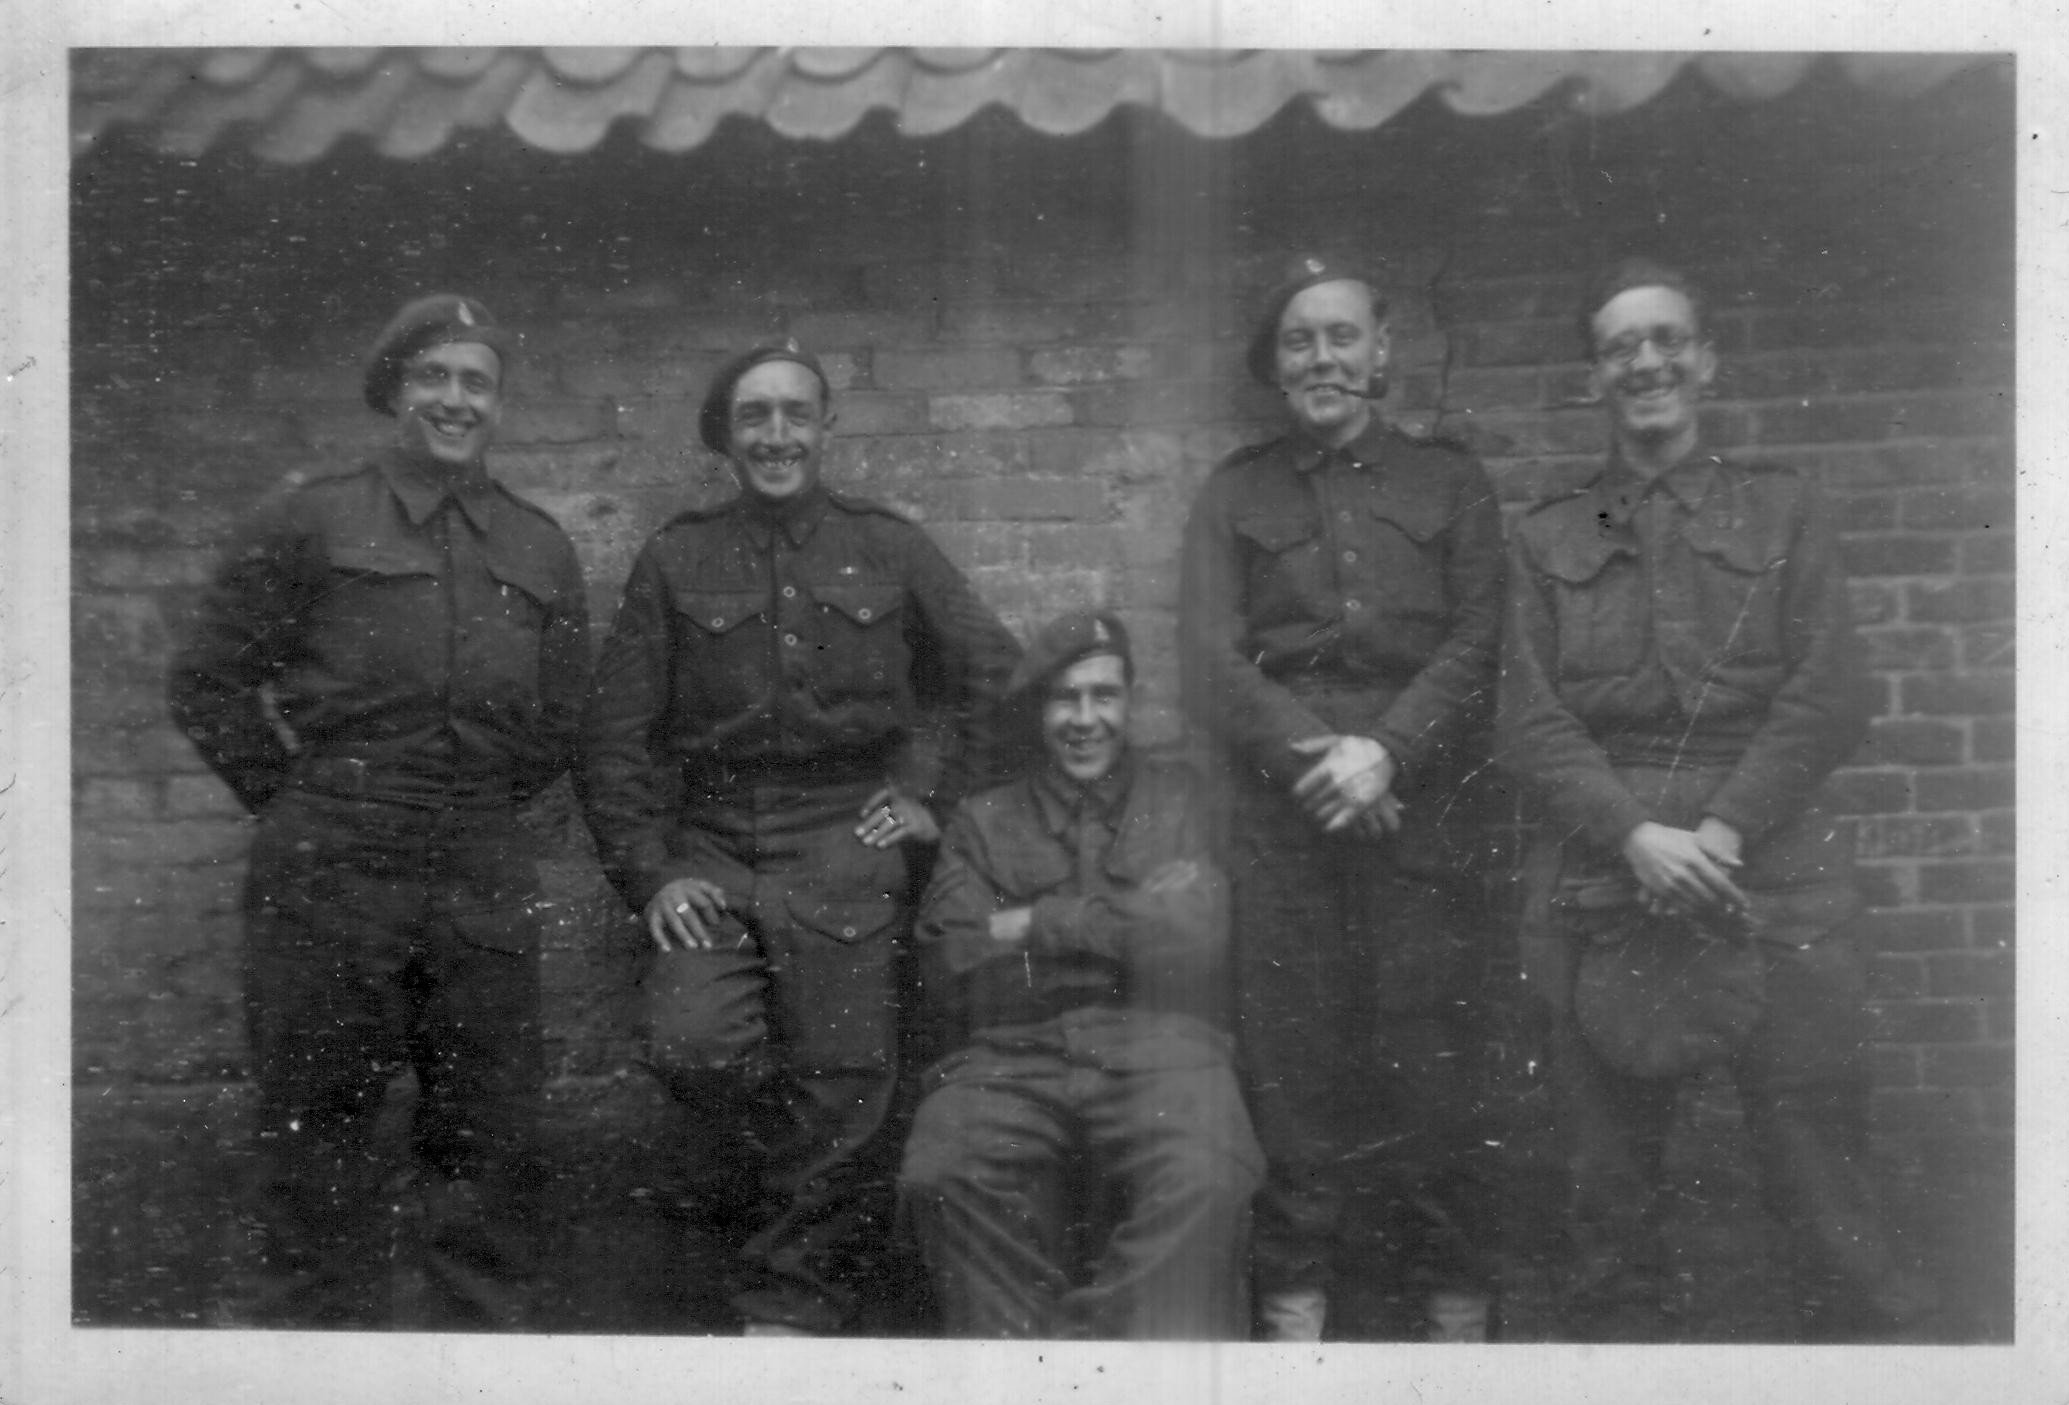 Men from CC Battery HQ. My father Dvr/Op Alex Paterson is second the right.